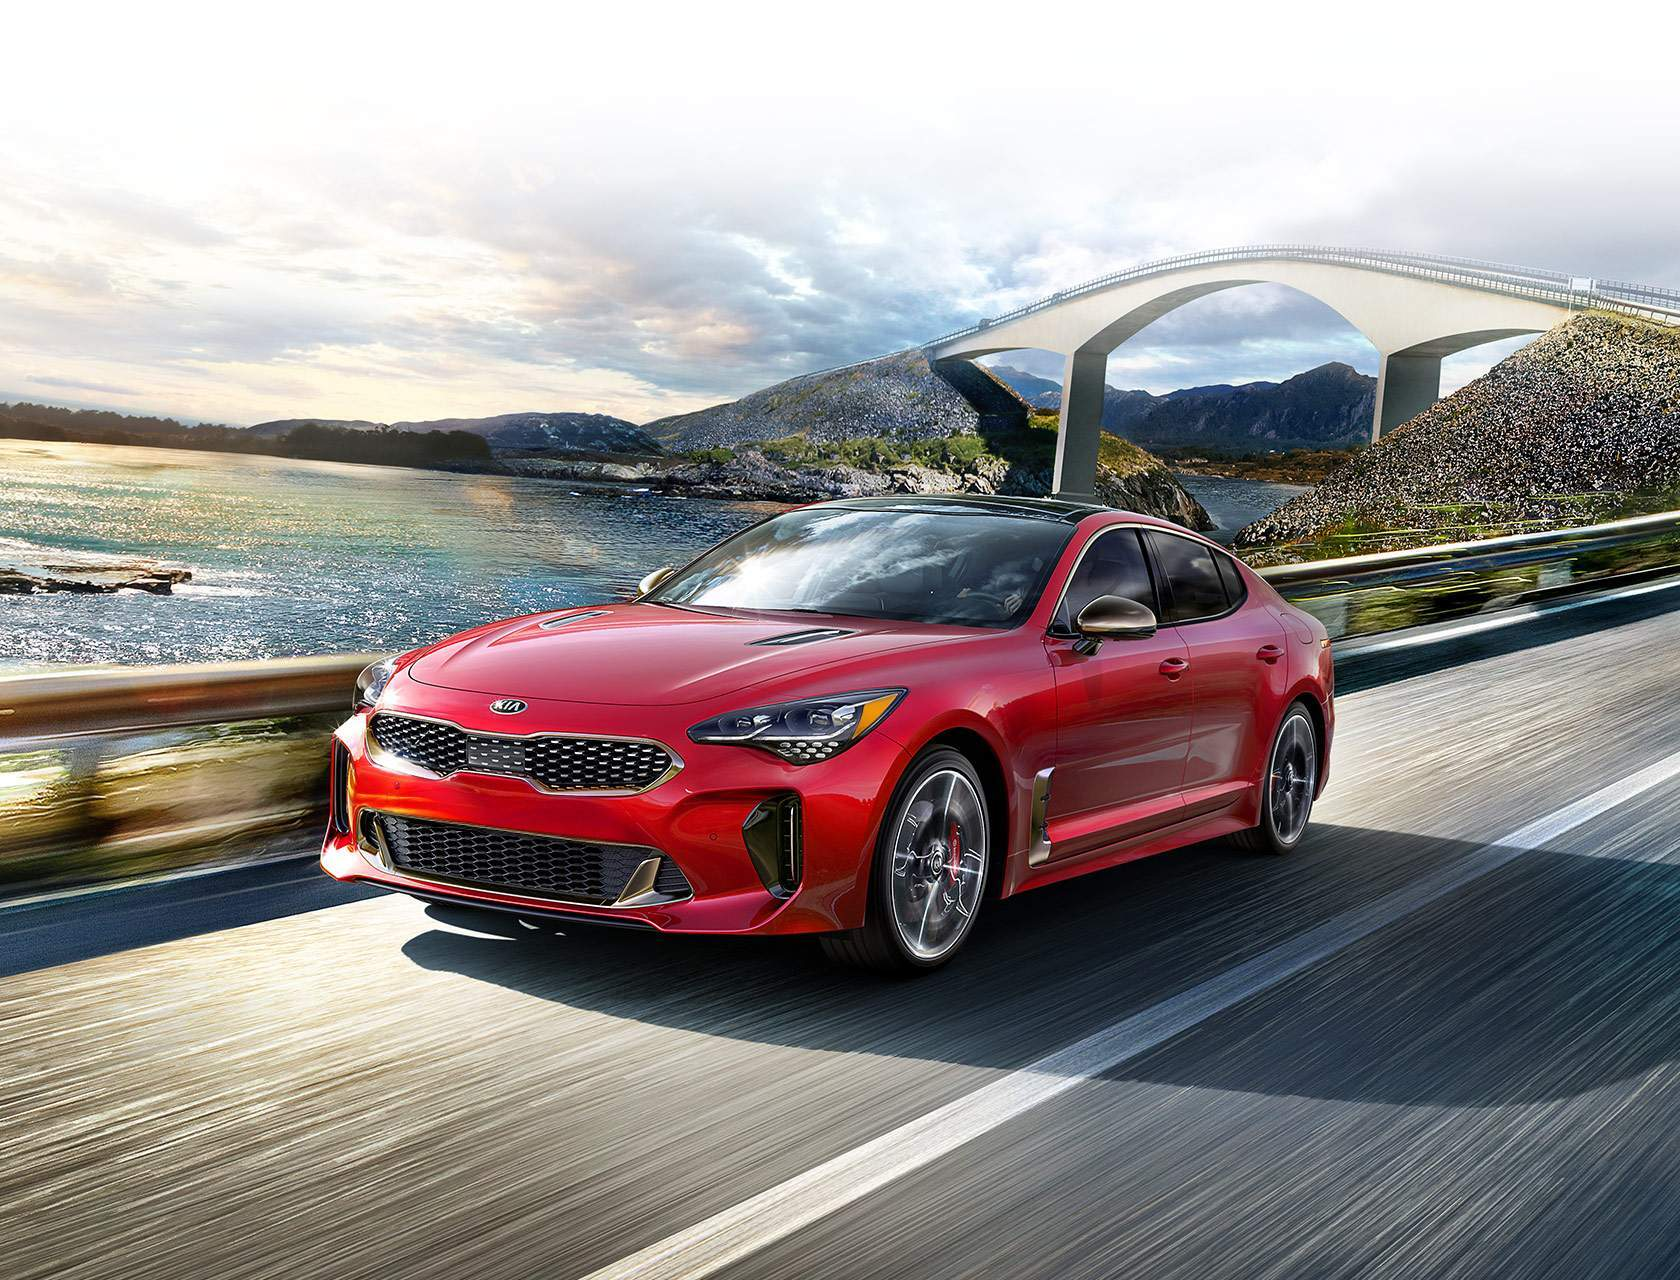 2018 Kia Stinger in Eureka, CA